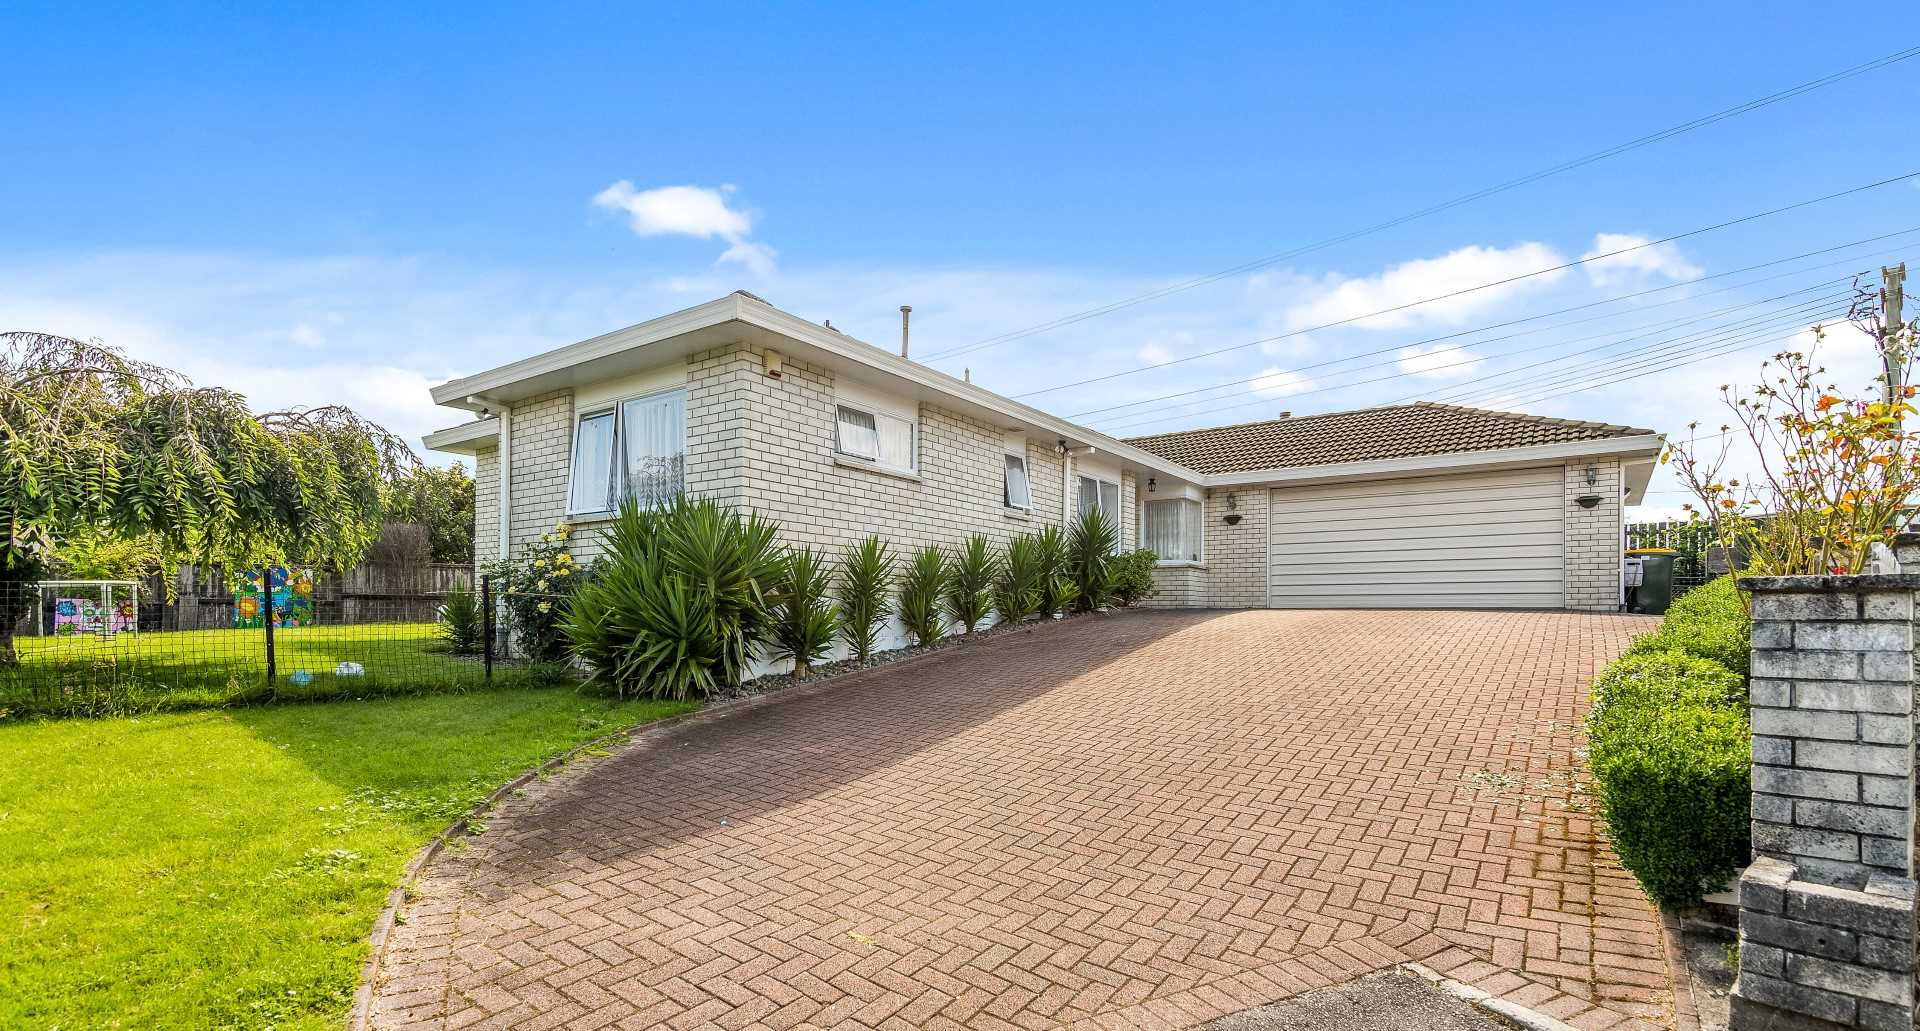 Appealing Family Home In Great Location